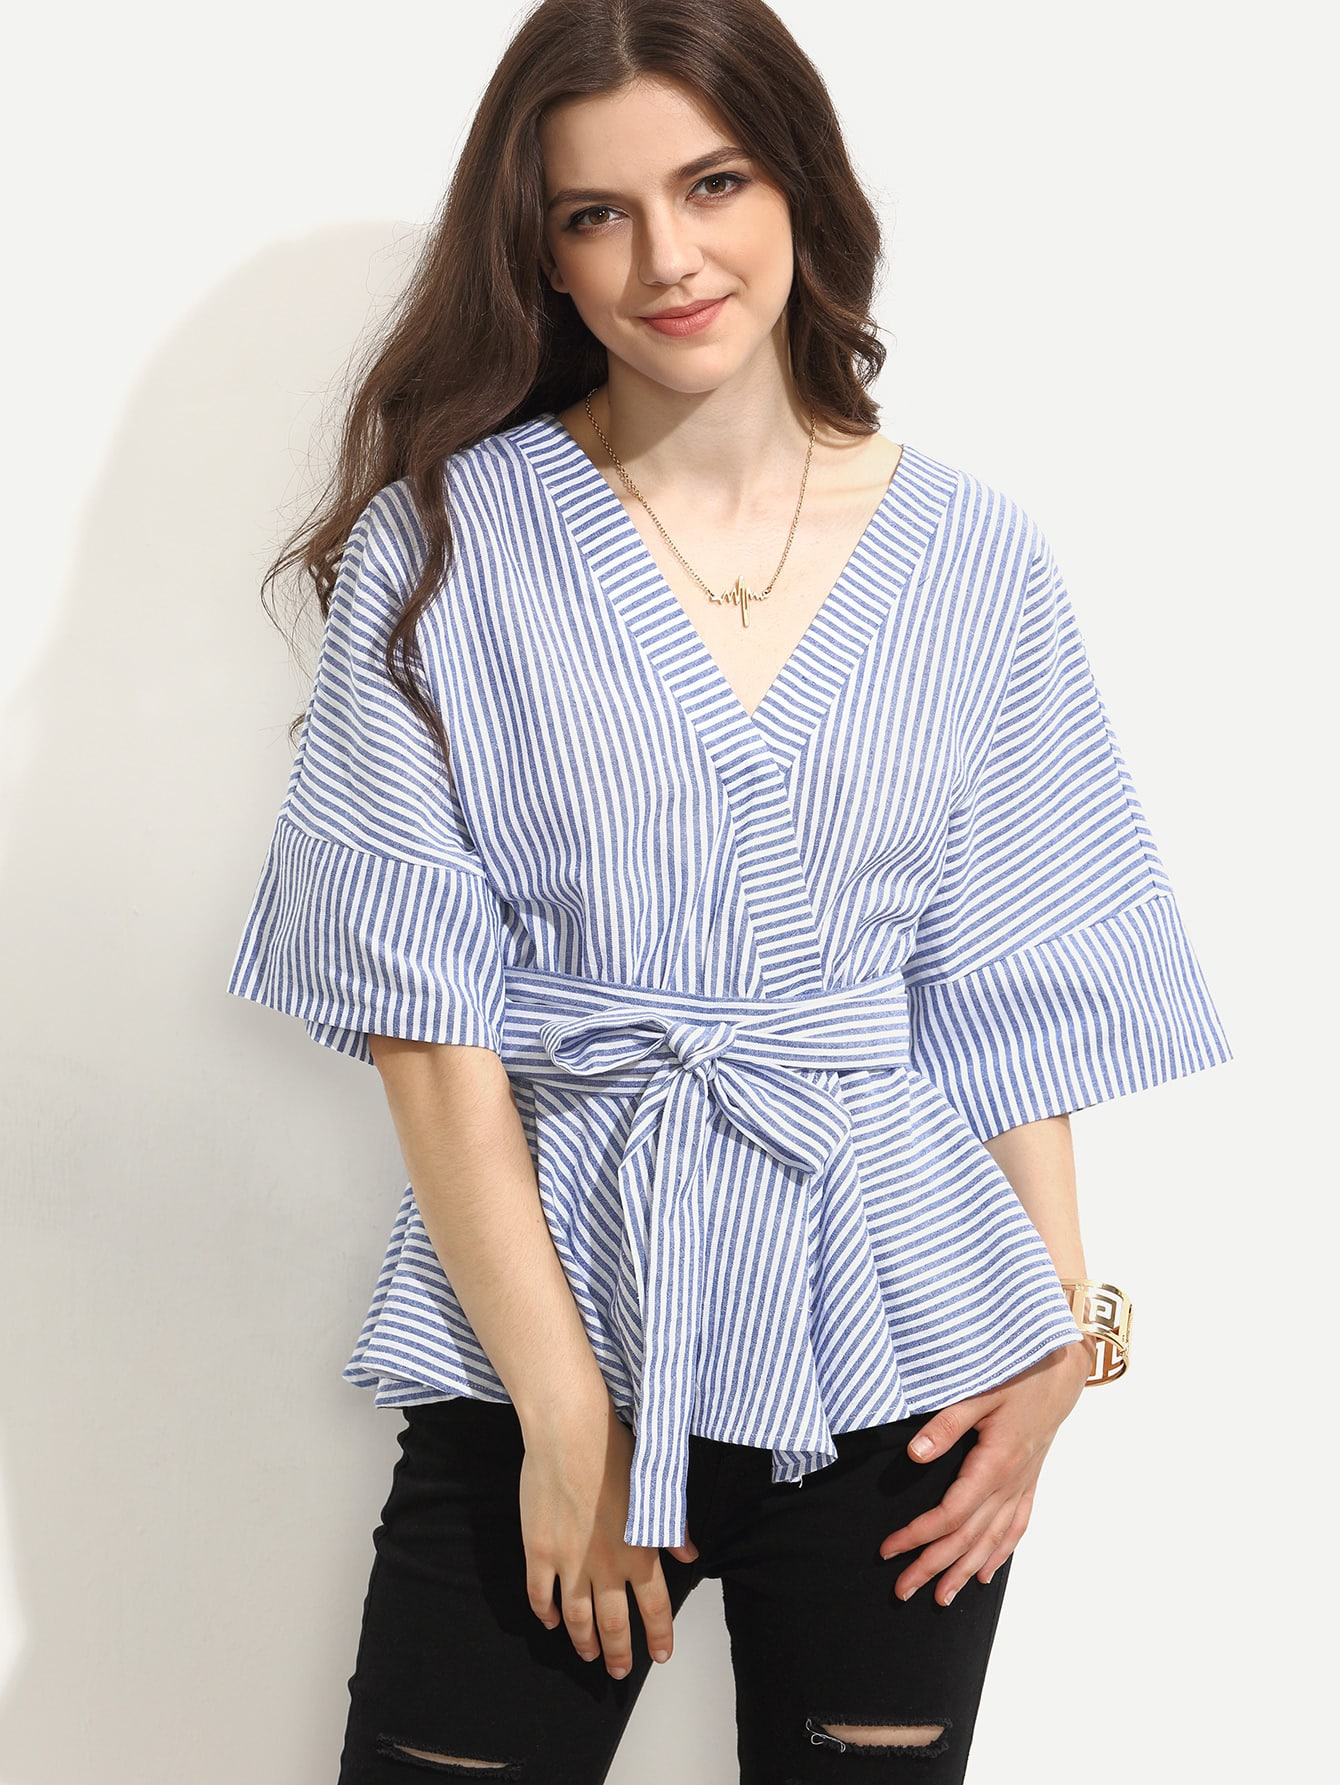 Blue Striped Tie Waist Surplice BlouseBlue Striped Tie Waist Surplice Blouse<br><br>color: Blue<br>size: L,M,S,XS